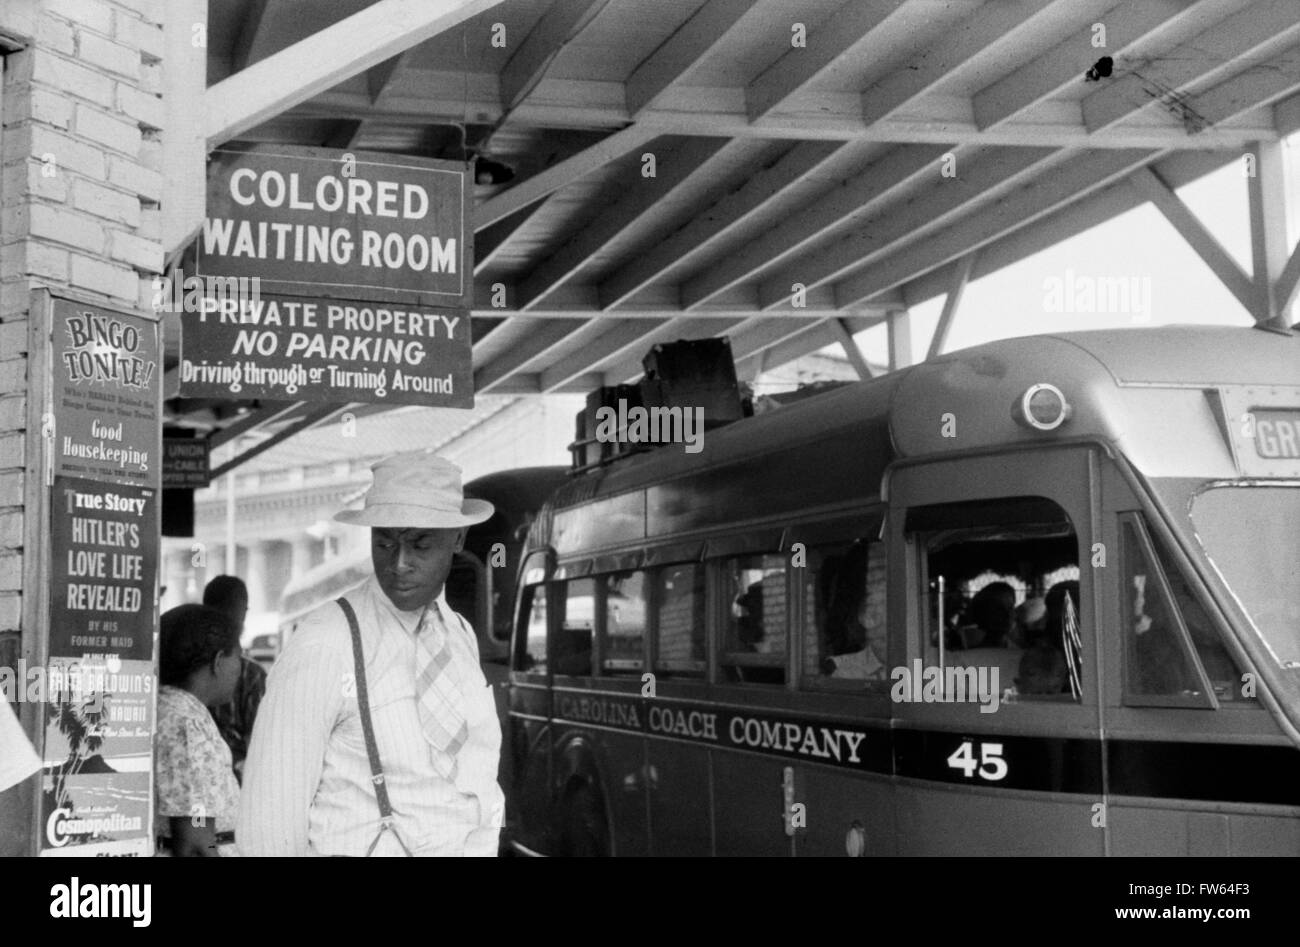 Segregation sign, USA.'Colored Waiting Room' sign at the bus station in Durham, North Carolina, USA. Photo - Stock Image